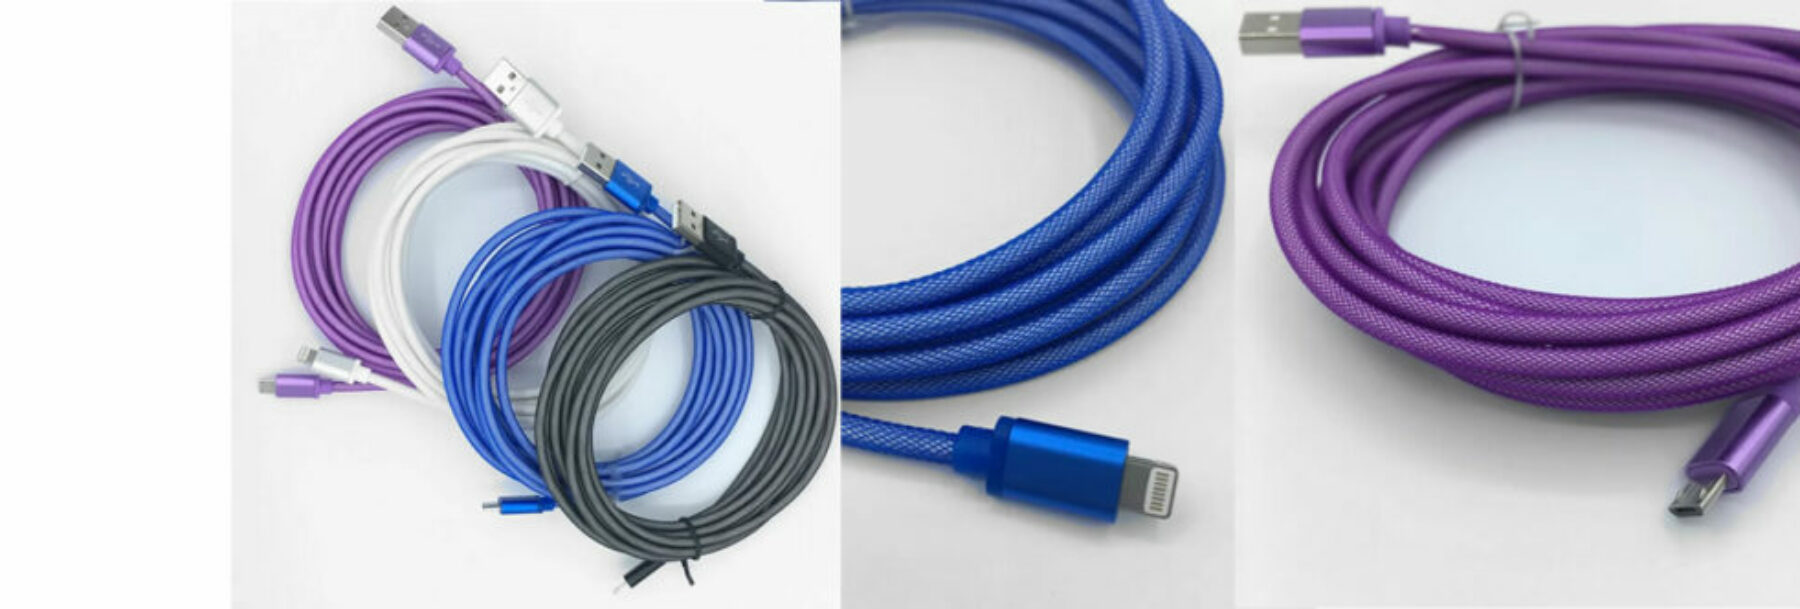 10-ft-cord